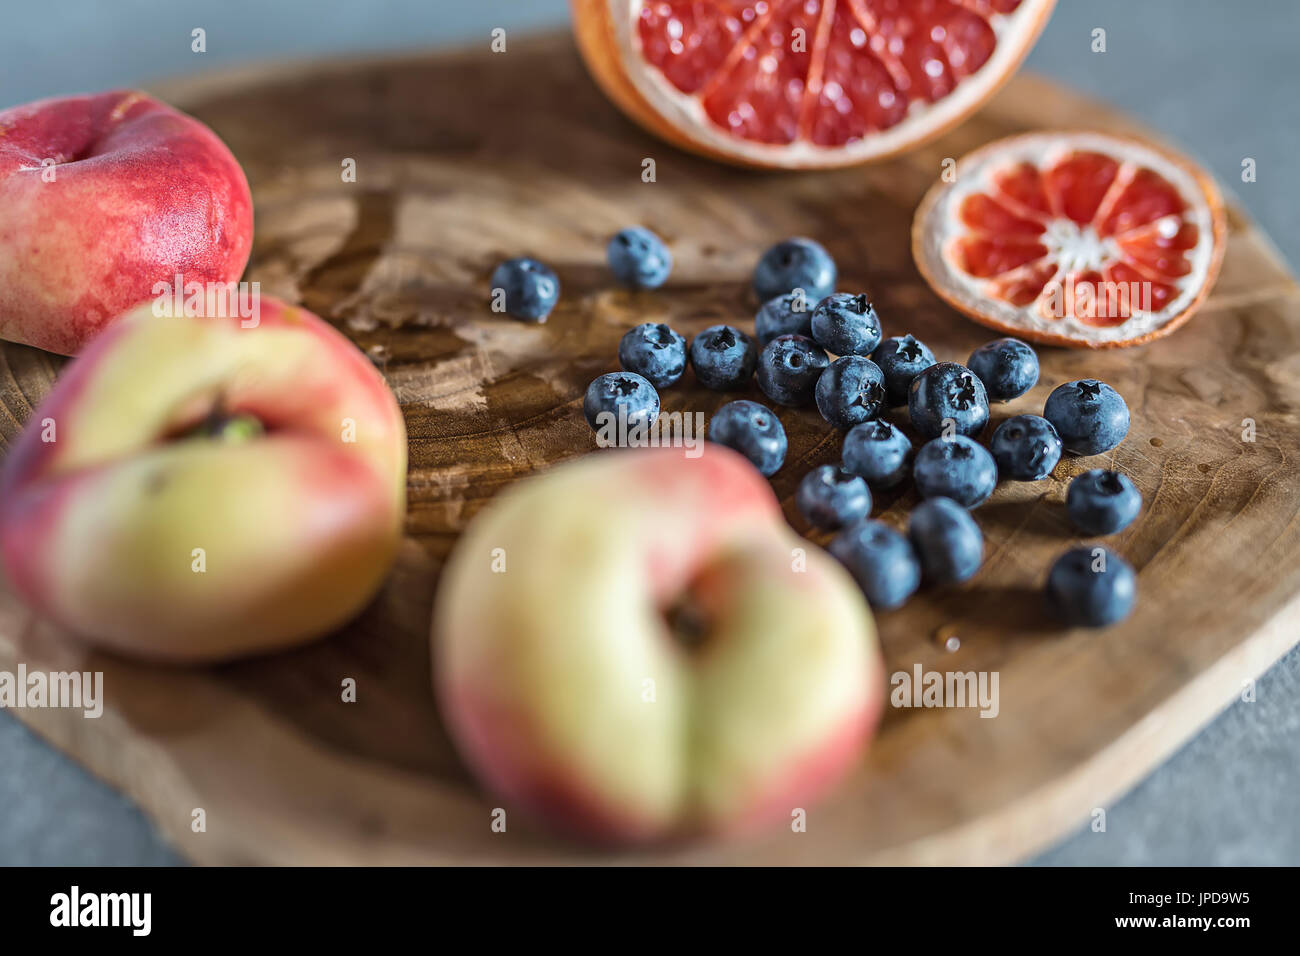 Fresh and juicy fruit on the textured wooden board on the gray surface. There is a heap of blueberries, three peaches Stock Photo